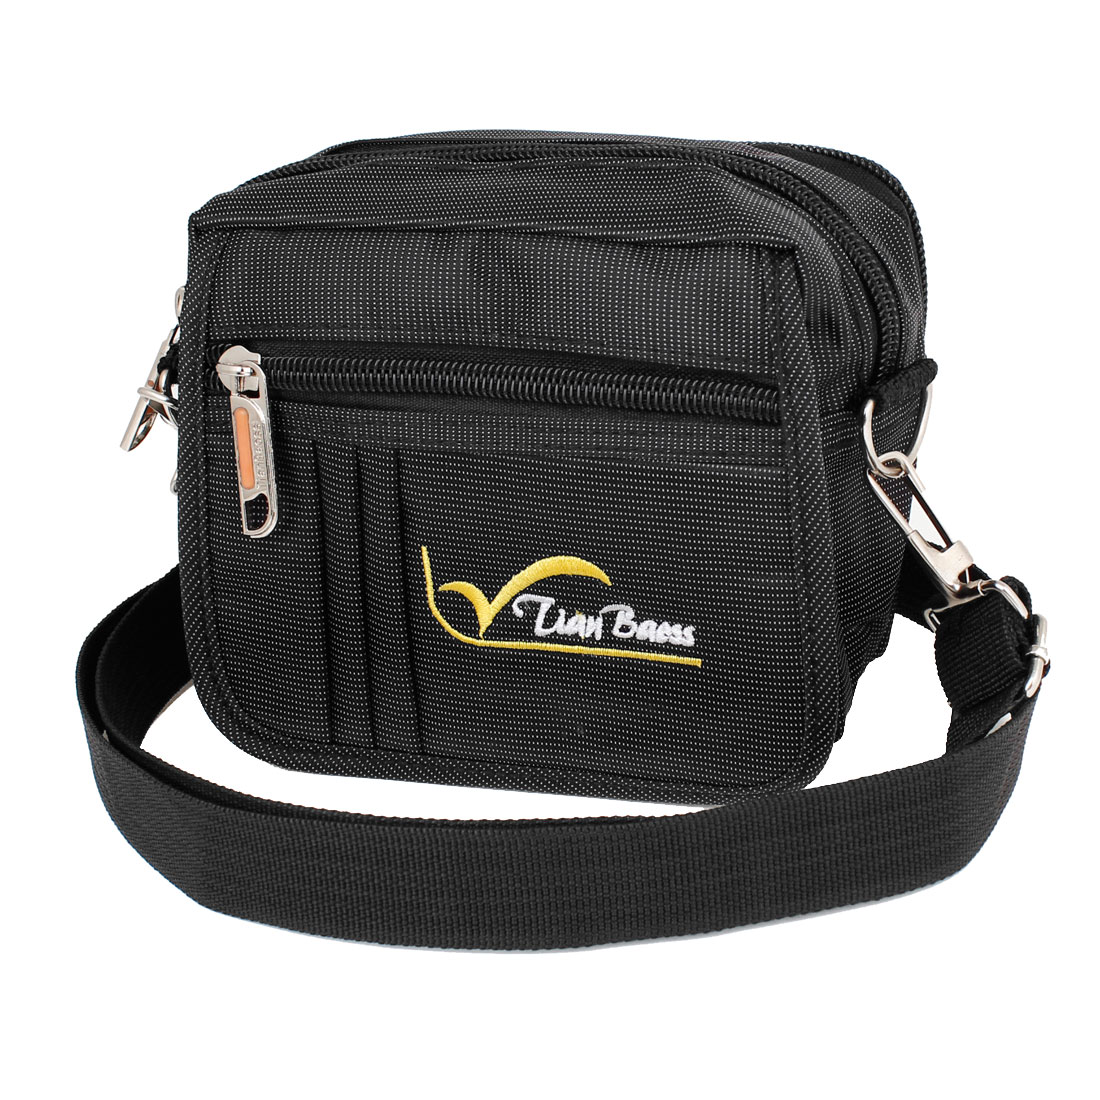 Men Black Belt Loop Design White Letter Print Waist Pack w Adjustable Strap